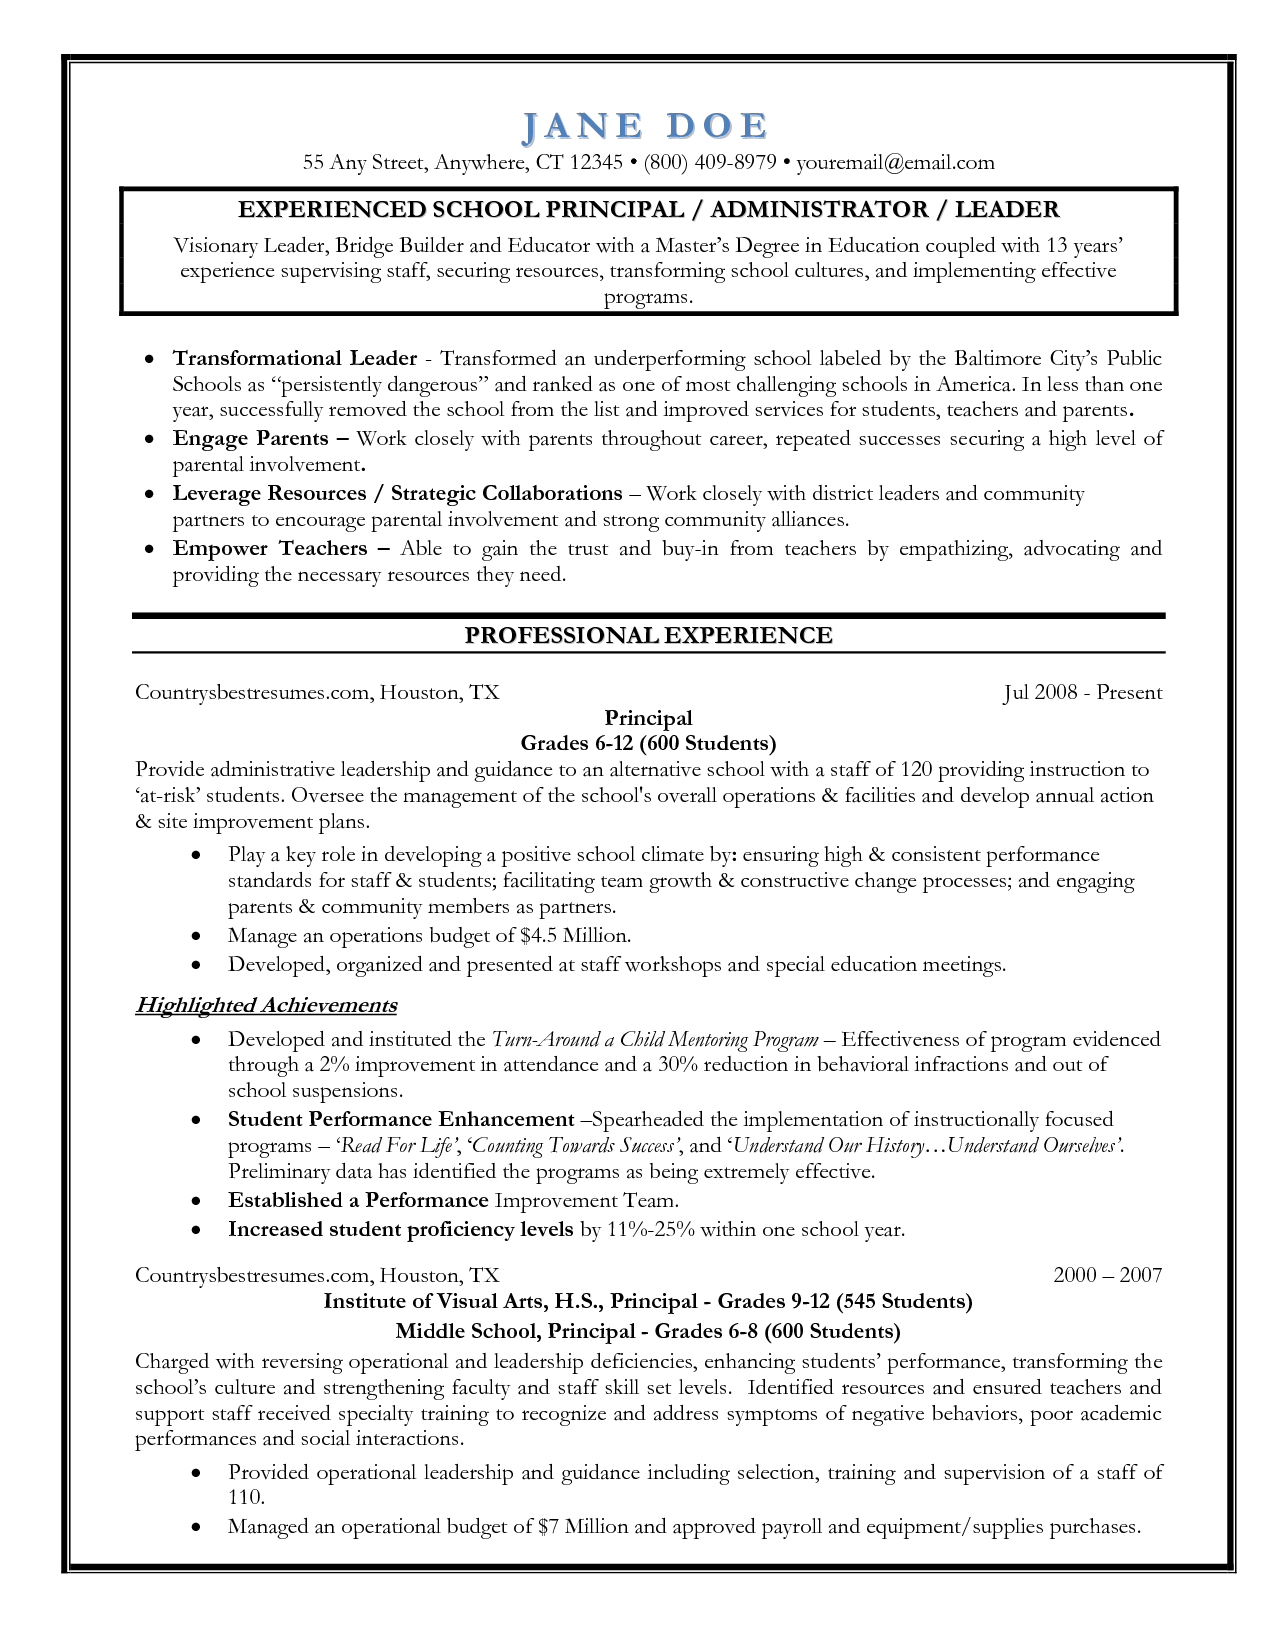 Resume And Vice Principal | Assistant Principal Resume Sample | Resume  Samples | Pinterest | Assistant Principal, Principal And Teacher Portfolio  Resume Template Education